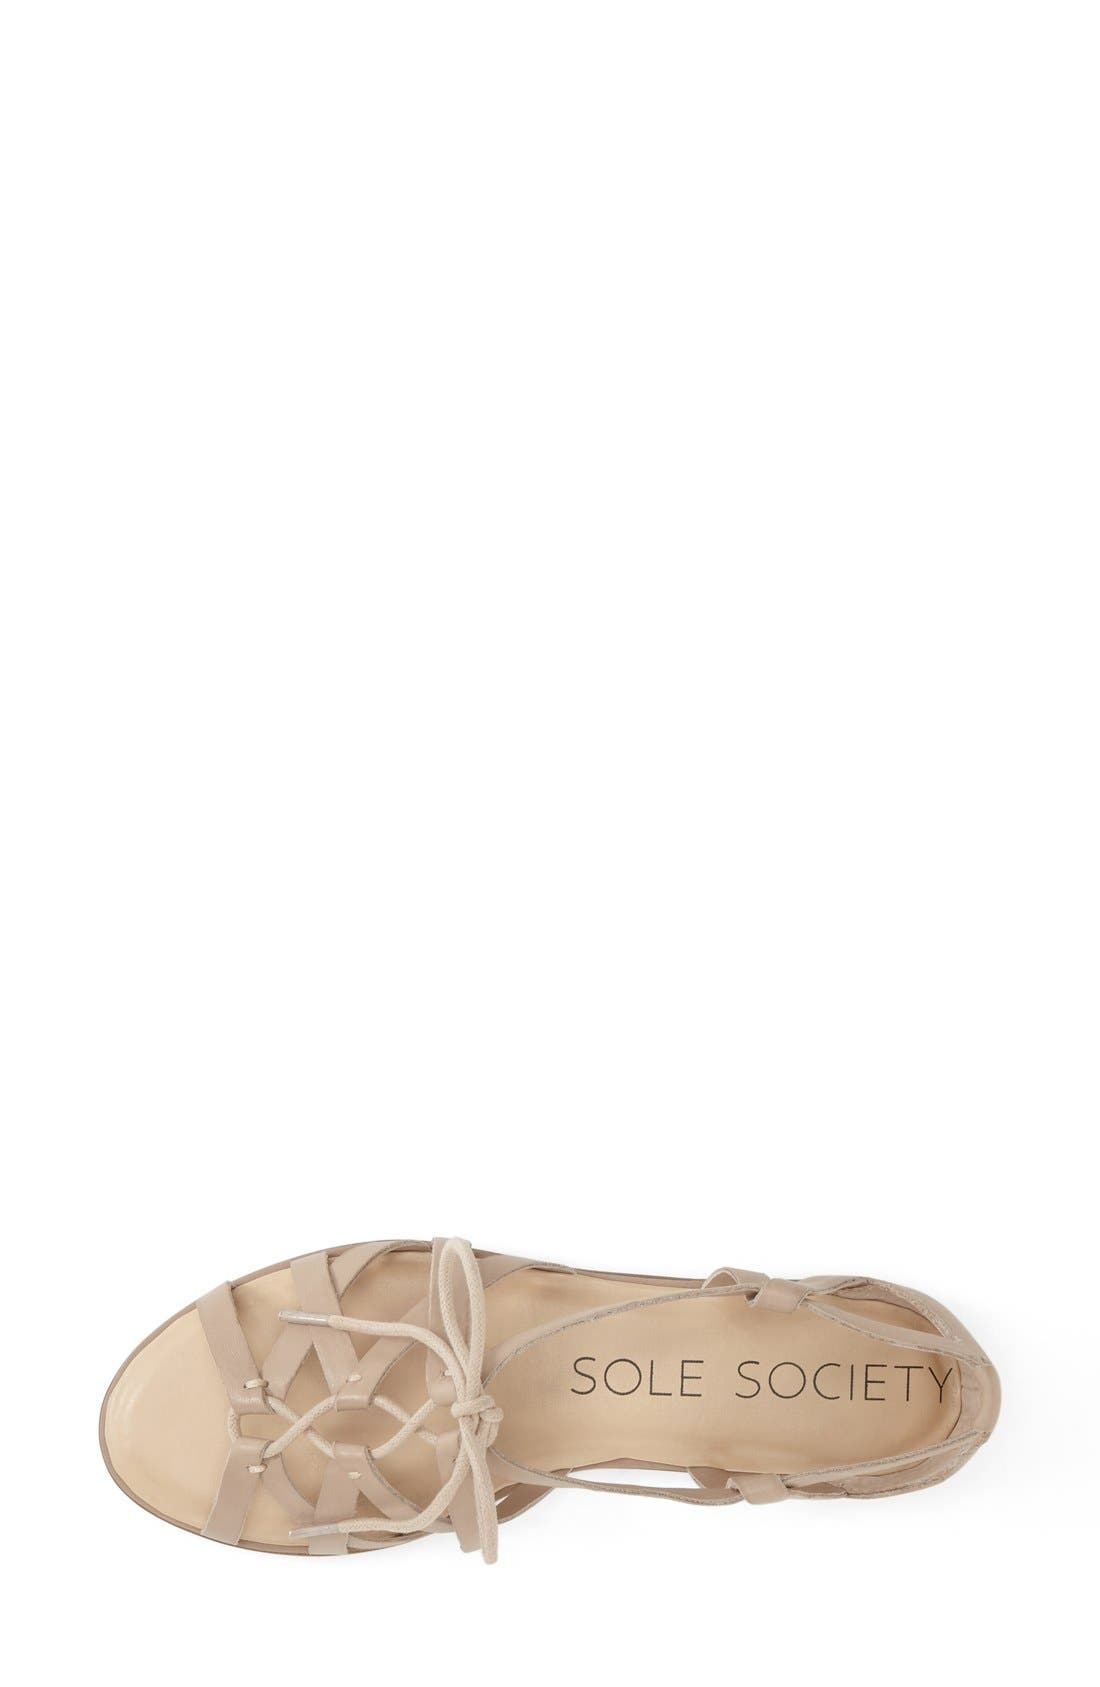 SOLE SOCIETY,                             'Gillian' Gladiator Sandal,                             Alternate thumbnail 3, color,                             200